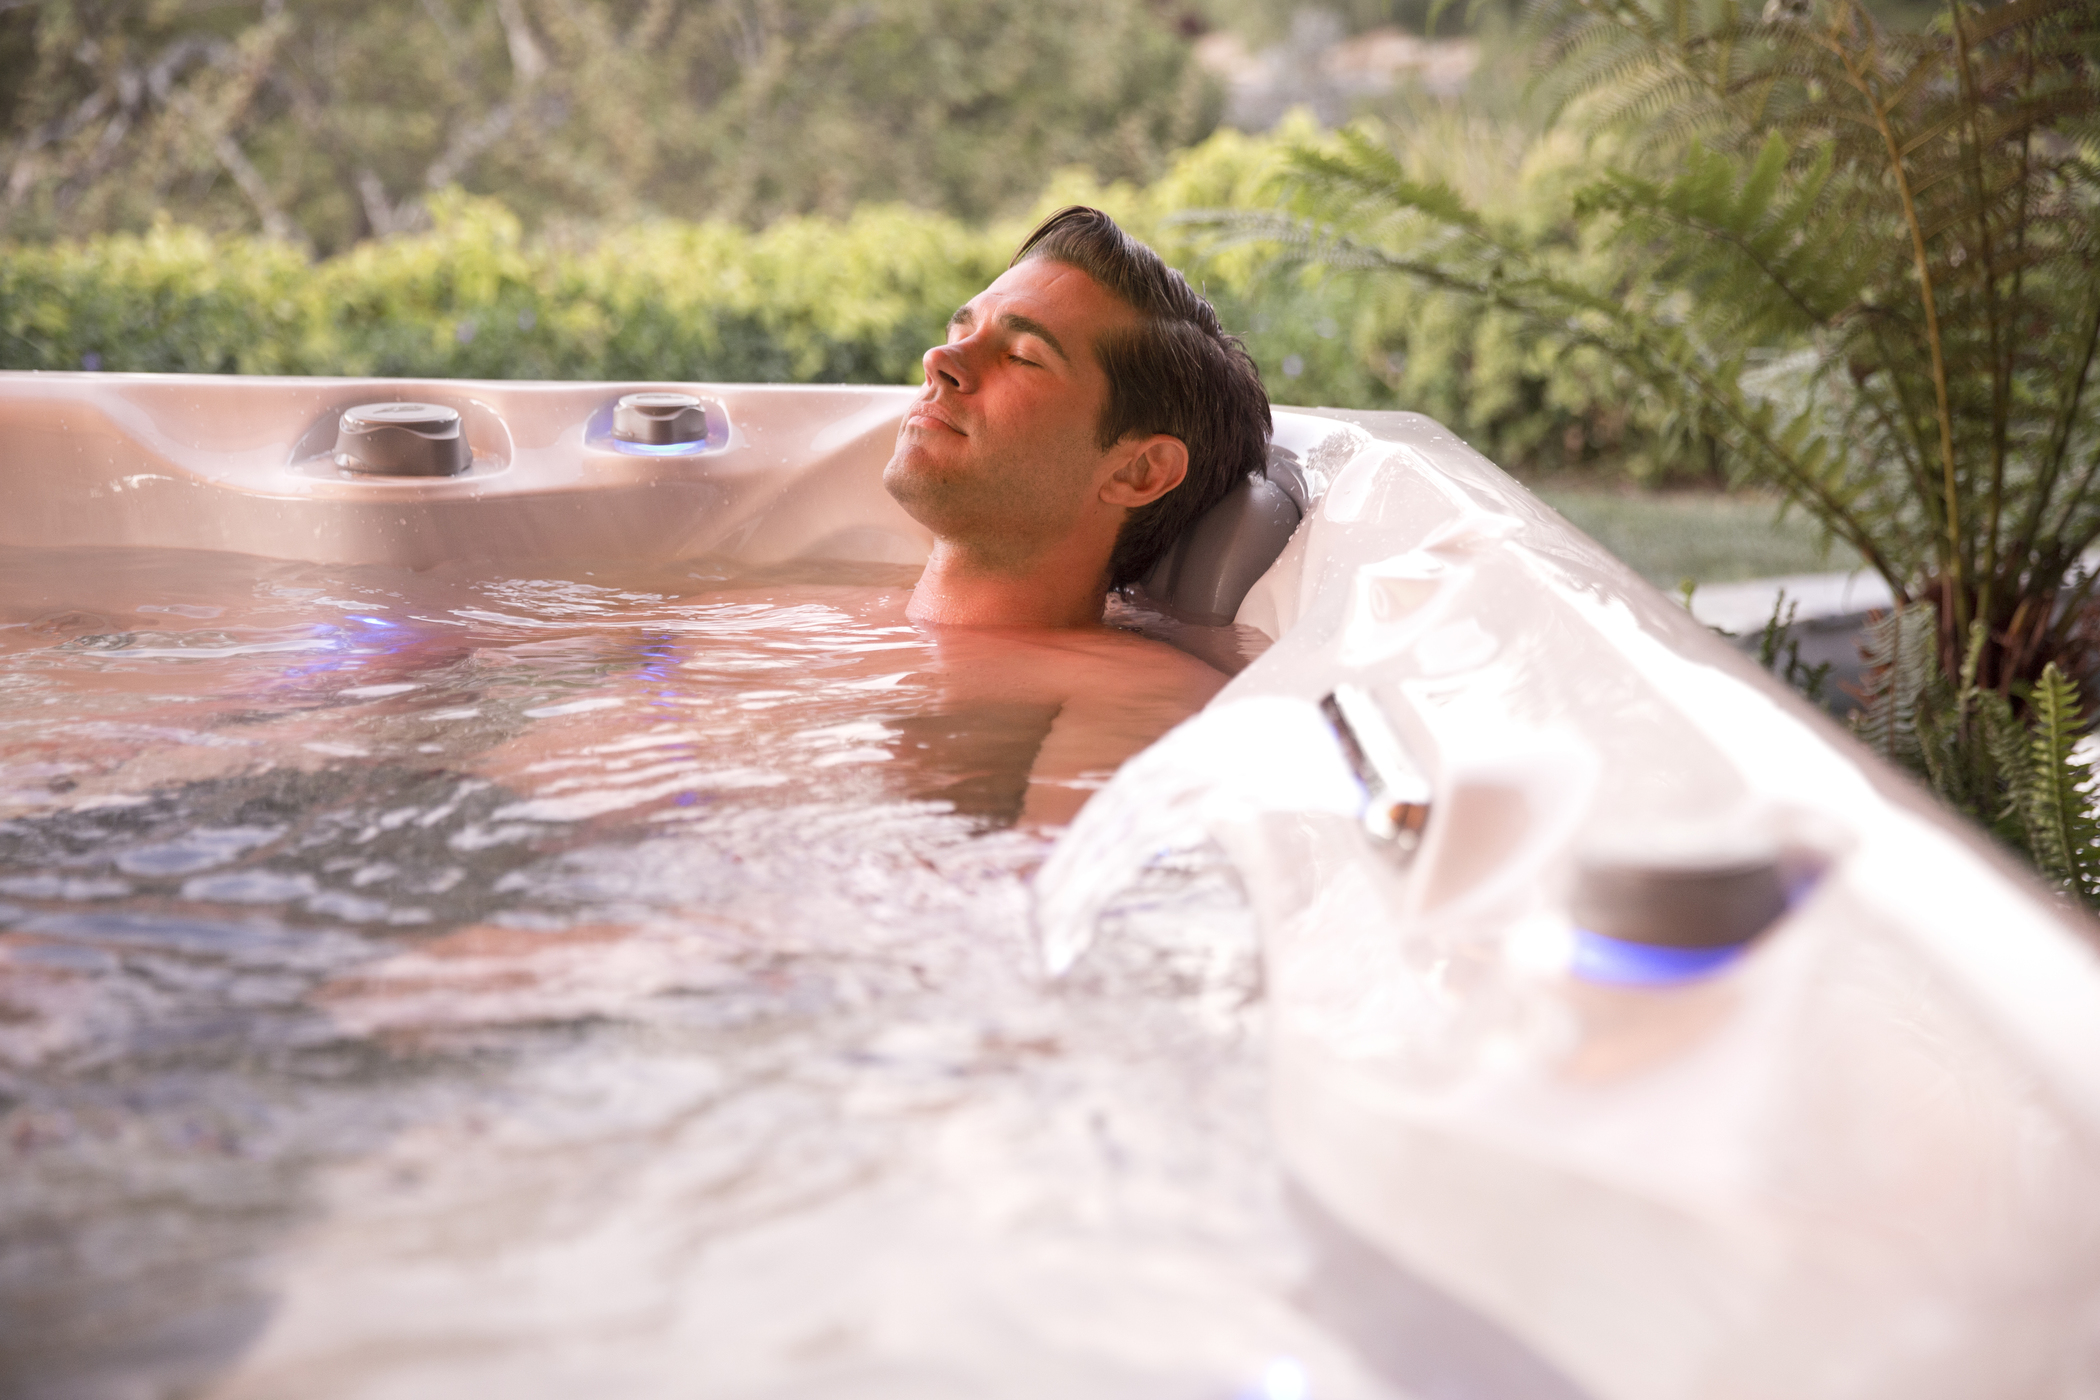 Man soaking in hot tub National Pools New Jersey